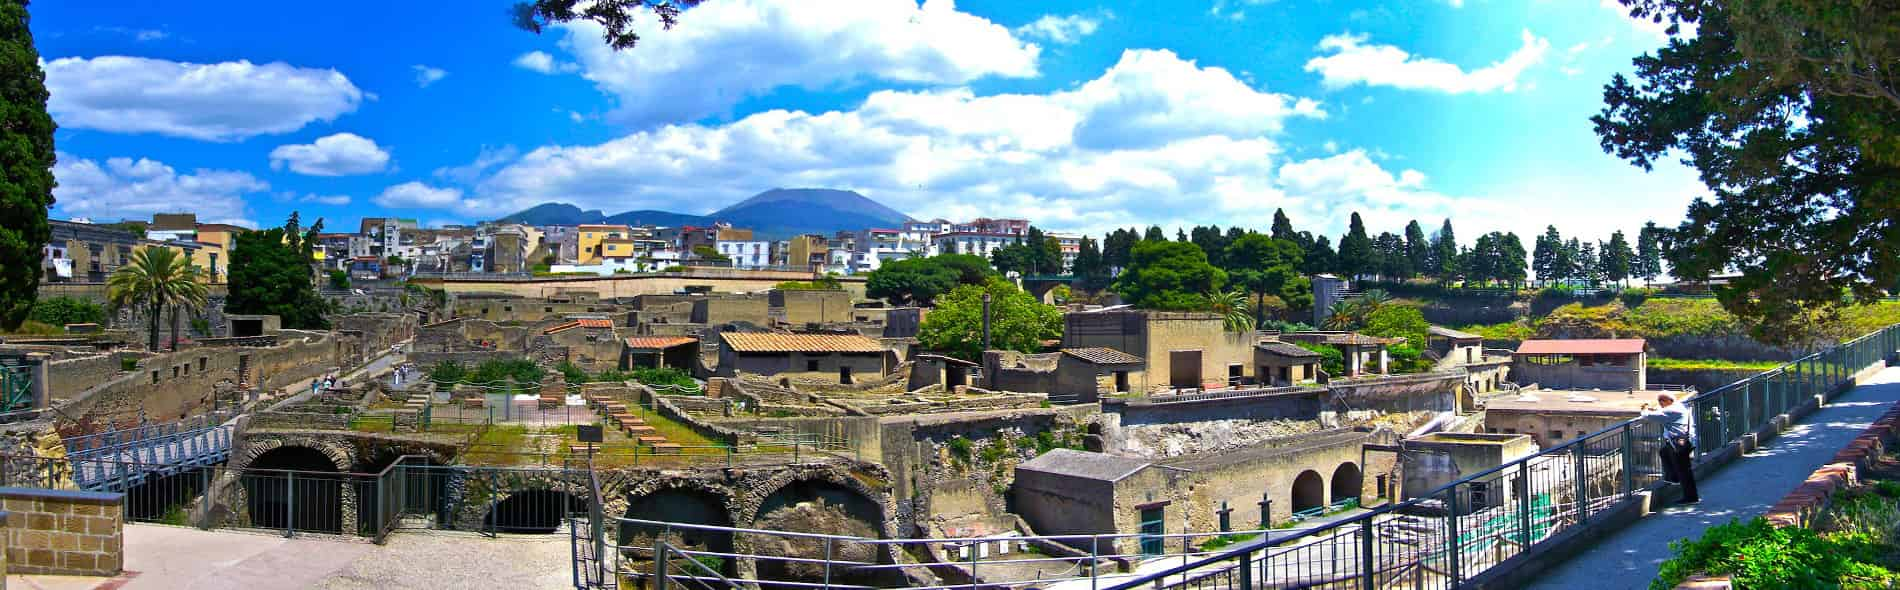 The walking tour and guided tour of the Archaeological Excavations of Herculaneum shows the beauty of a Roman city that has remained almost intact for over two thousand years